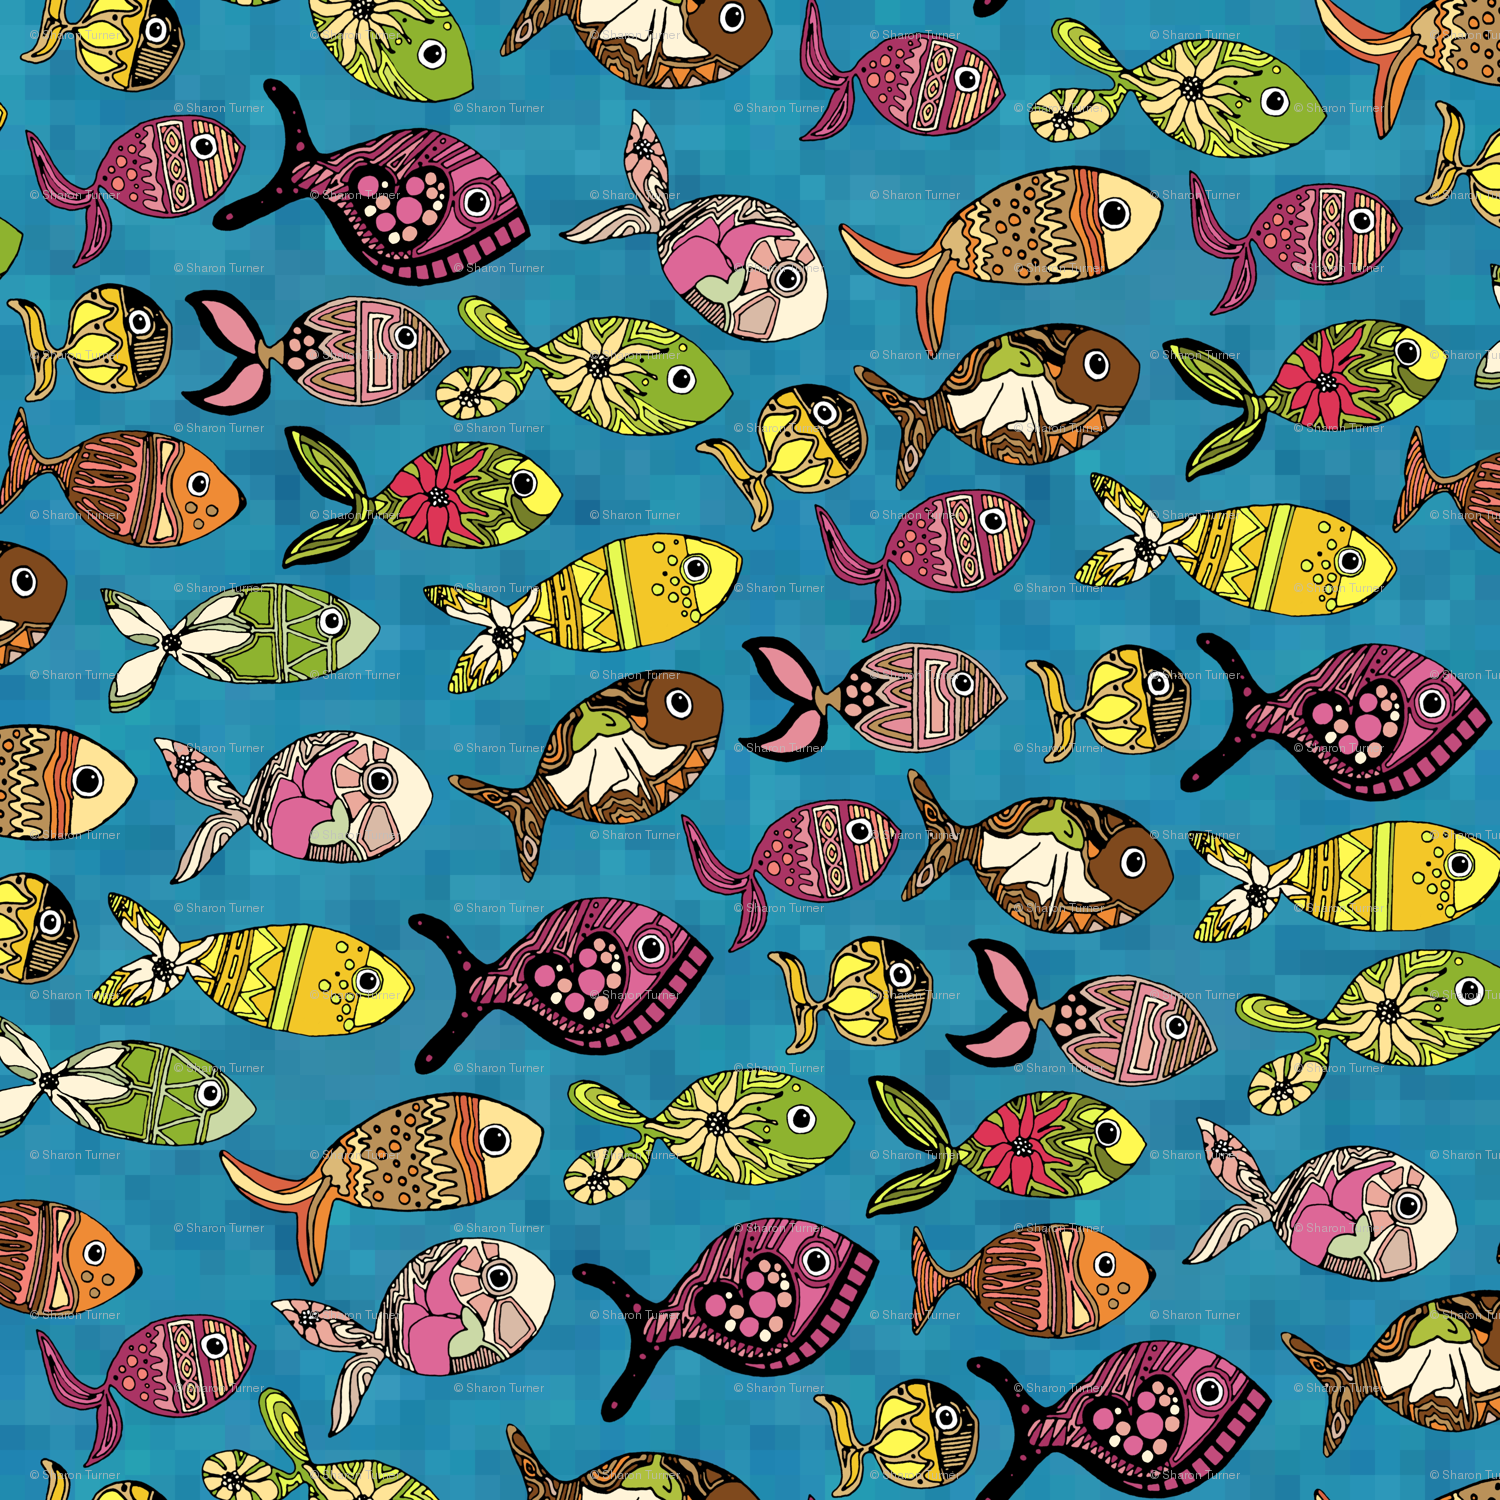 Download wallpaper with fish design gallery for Fish wrapping paper